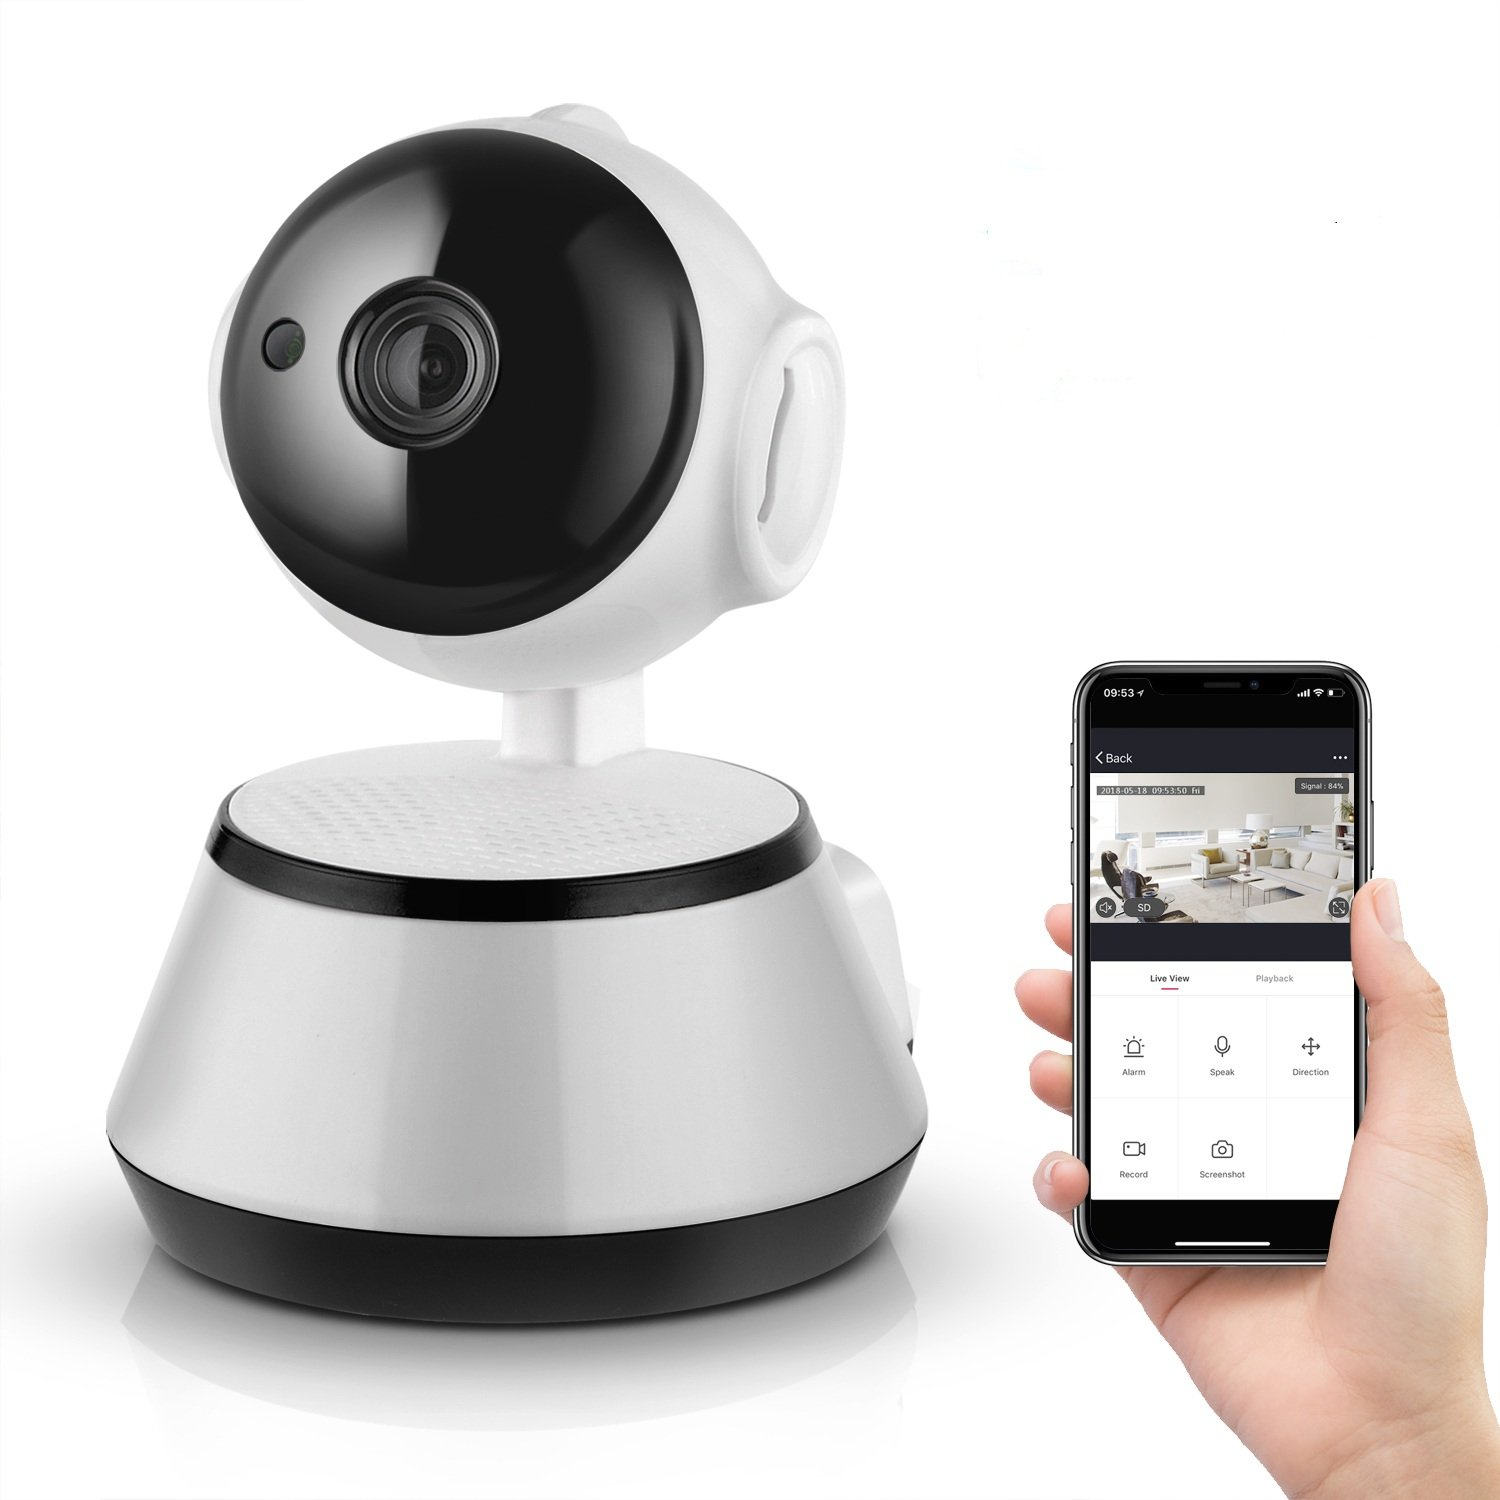 BRIHOME 355° Dome Wireless IP Smart Camera, 720P Wi-Fi Home Security Surveillance Camera with Night Vision and Motion Detection for Baby/Elder/Pet/Nanny Monitor with iOS, Android App